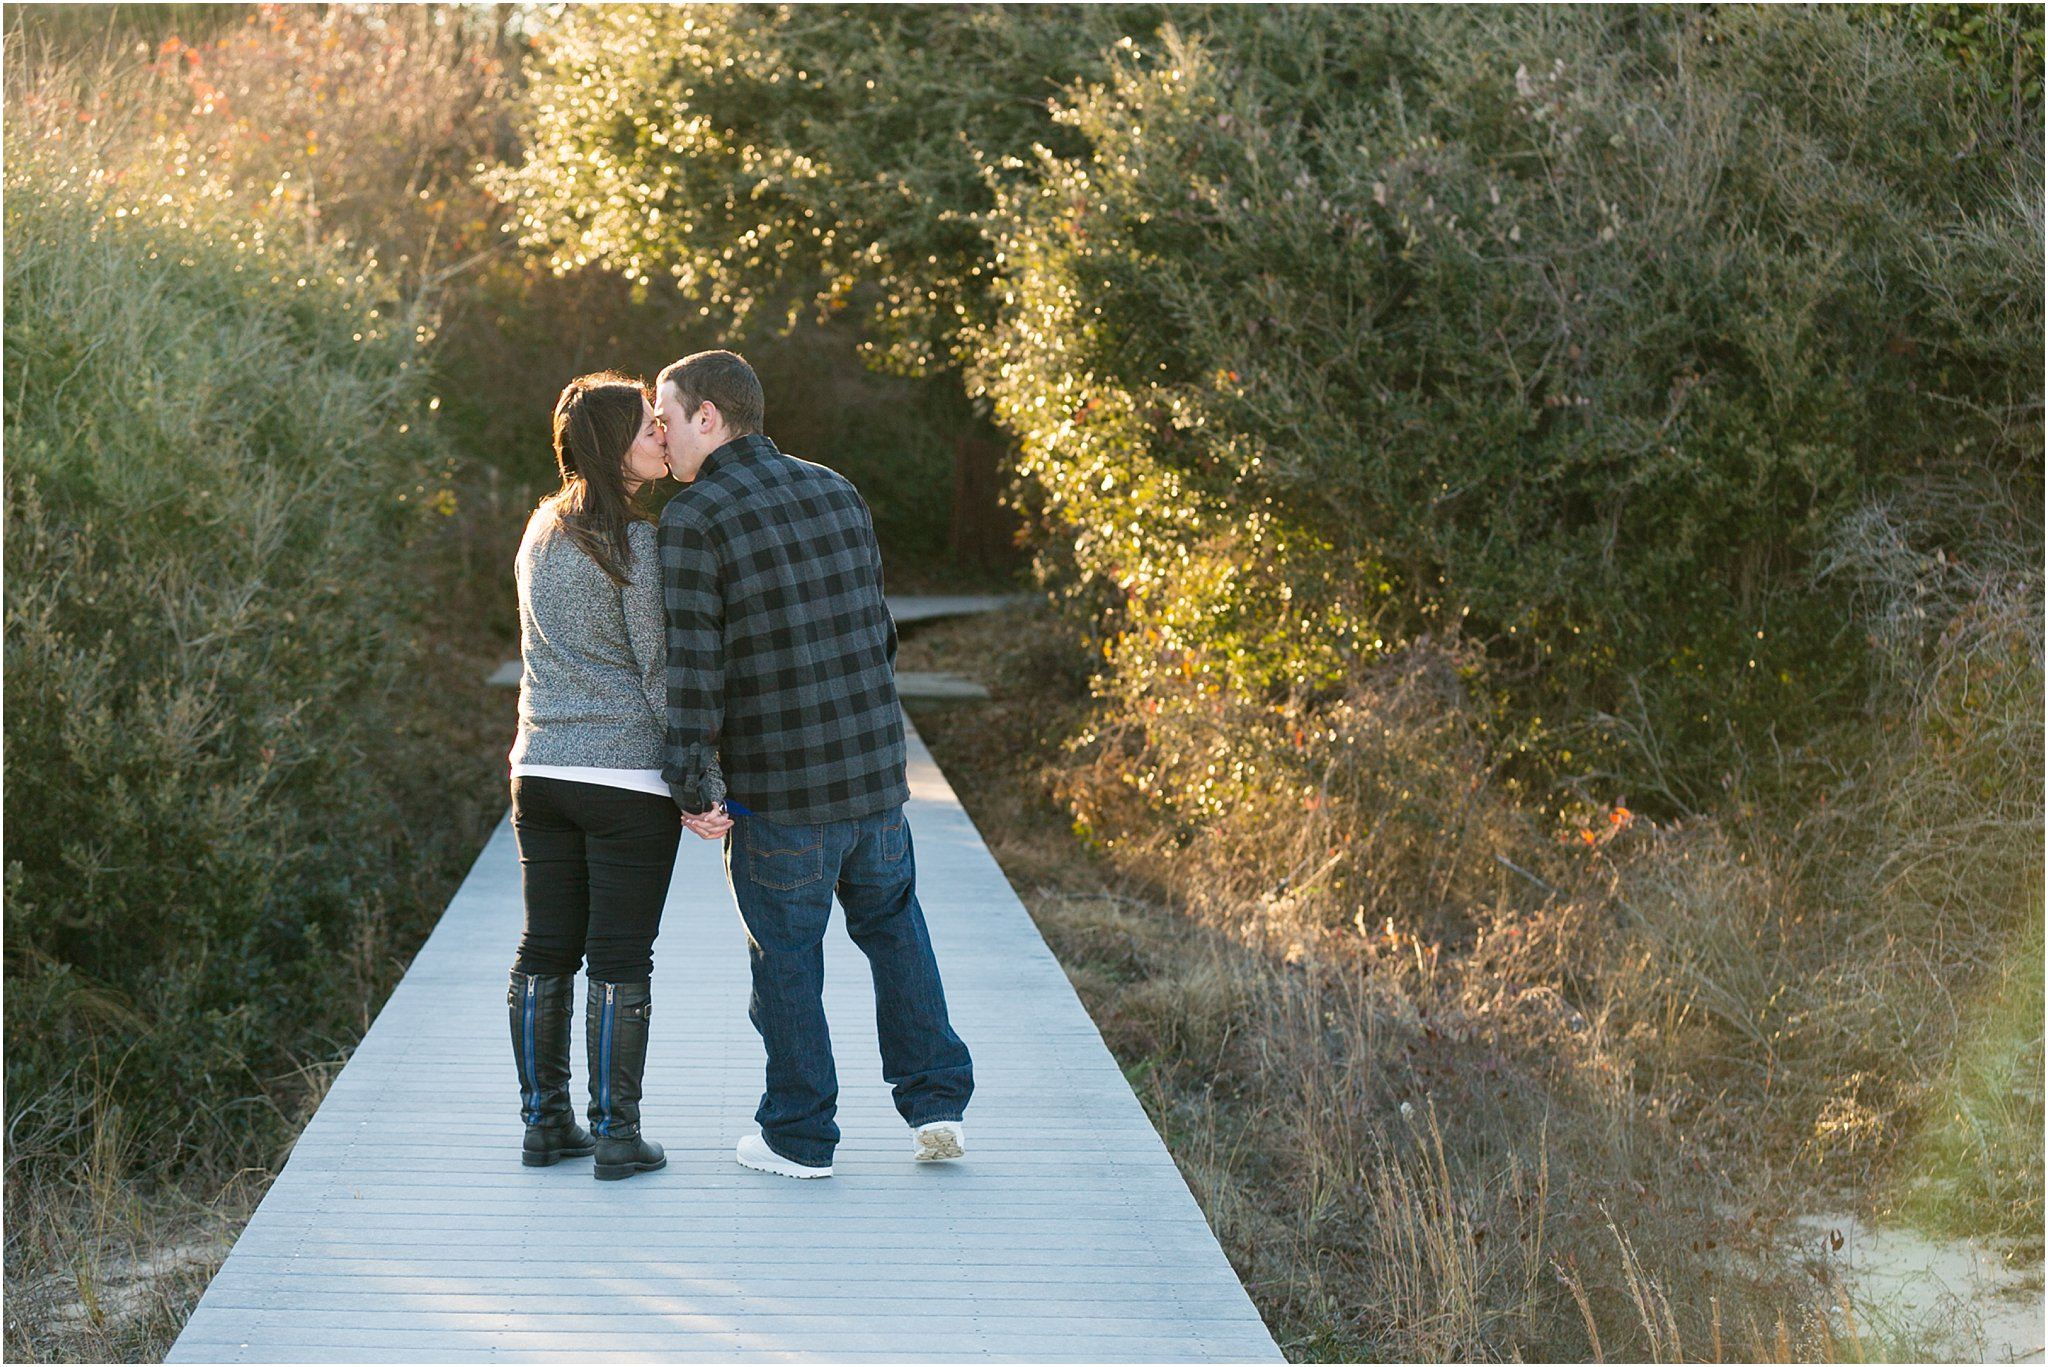 jessica_ryan_photography_virginia_beach_virginia_engagements_engagement_photographer_candid_1037